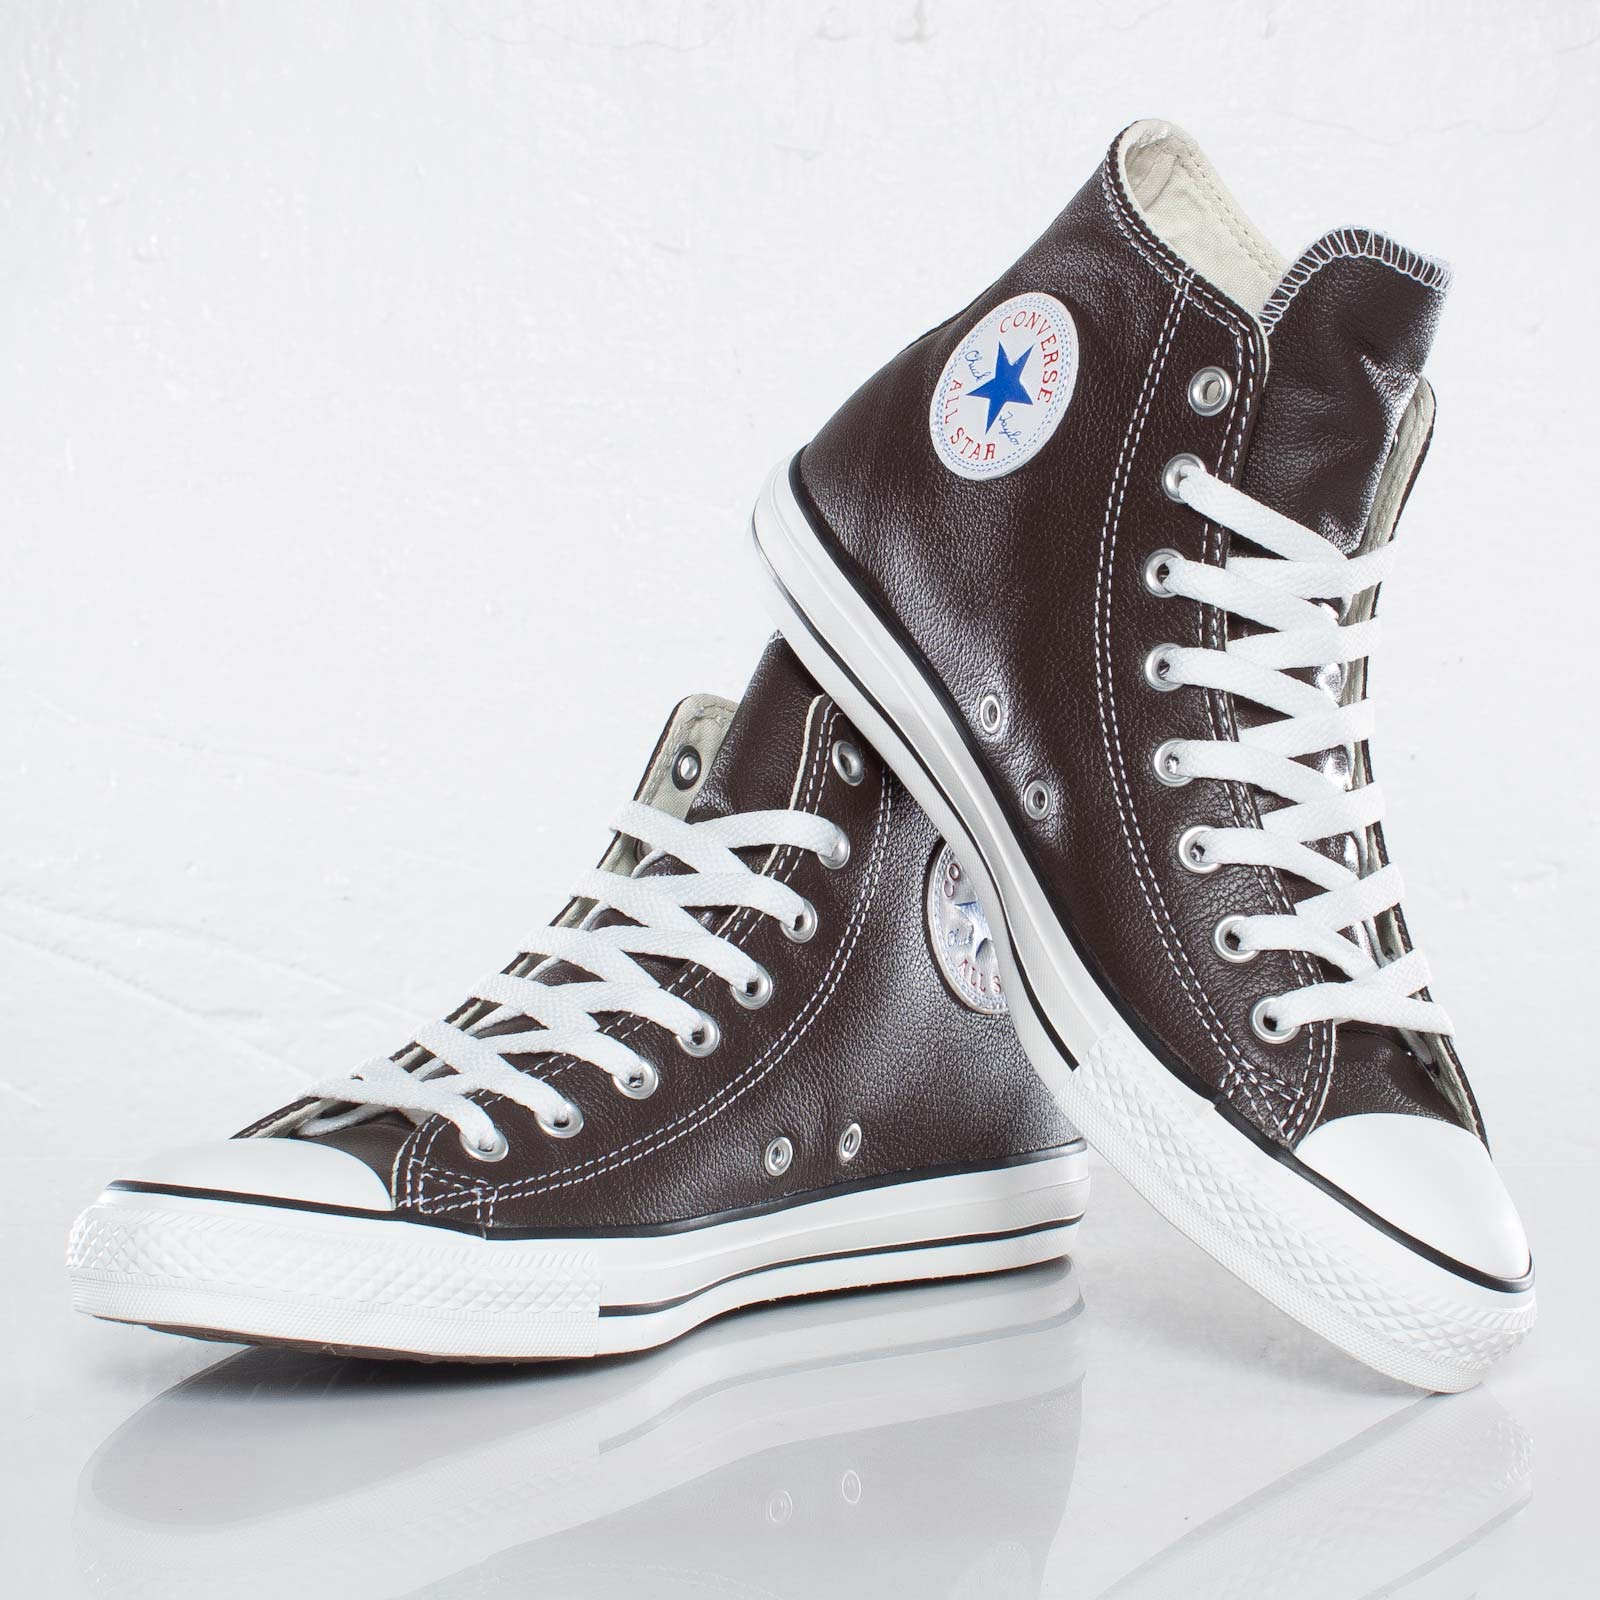 2converse all star leather hi